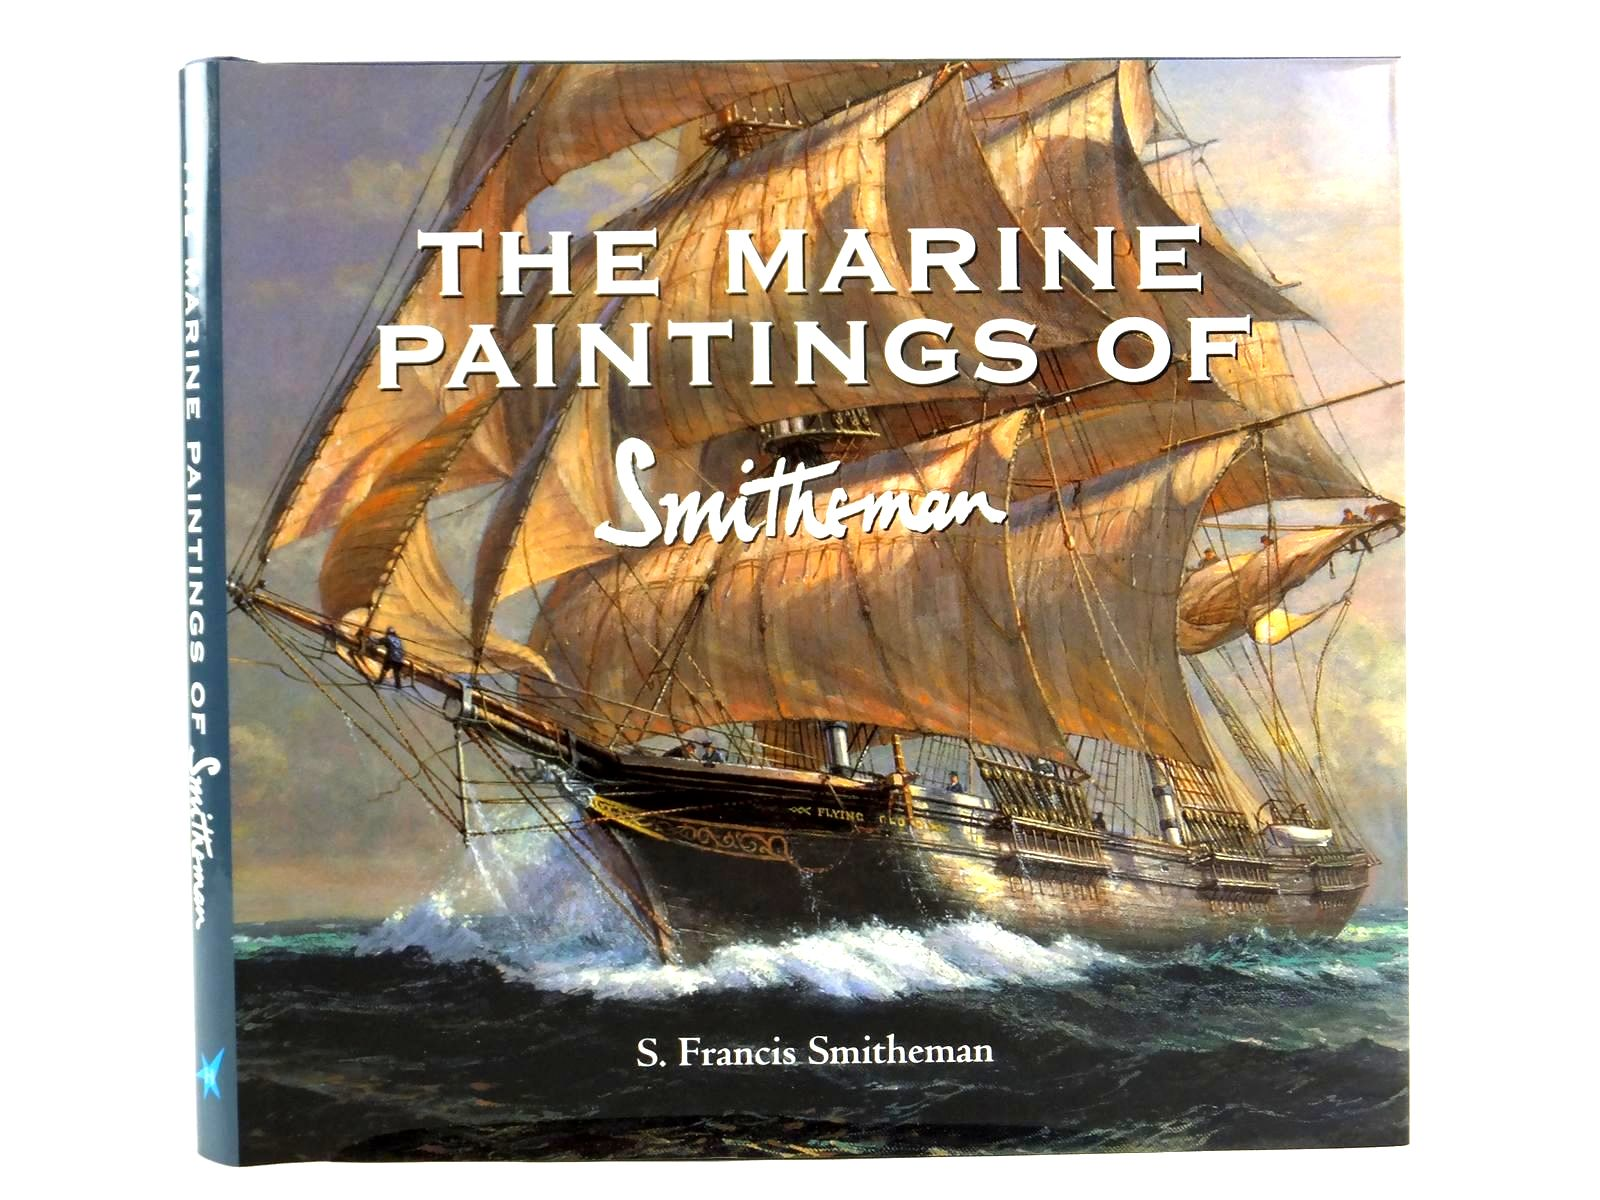 Photo of THE MARINE PAINTINGS OF SMITHEMAN written by Smitheman, S. Francis illustrated by Smitheman, S. Francis published by Halstar (STOCK CODE: 1608544)  for sale by Stella & Rose's Books